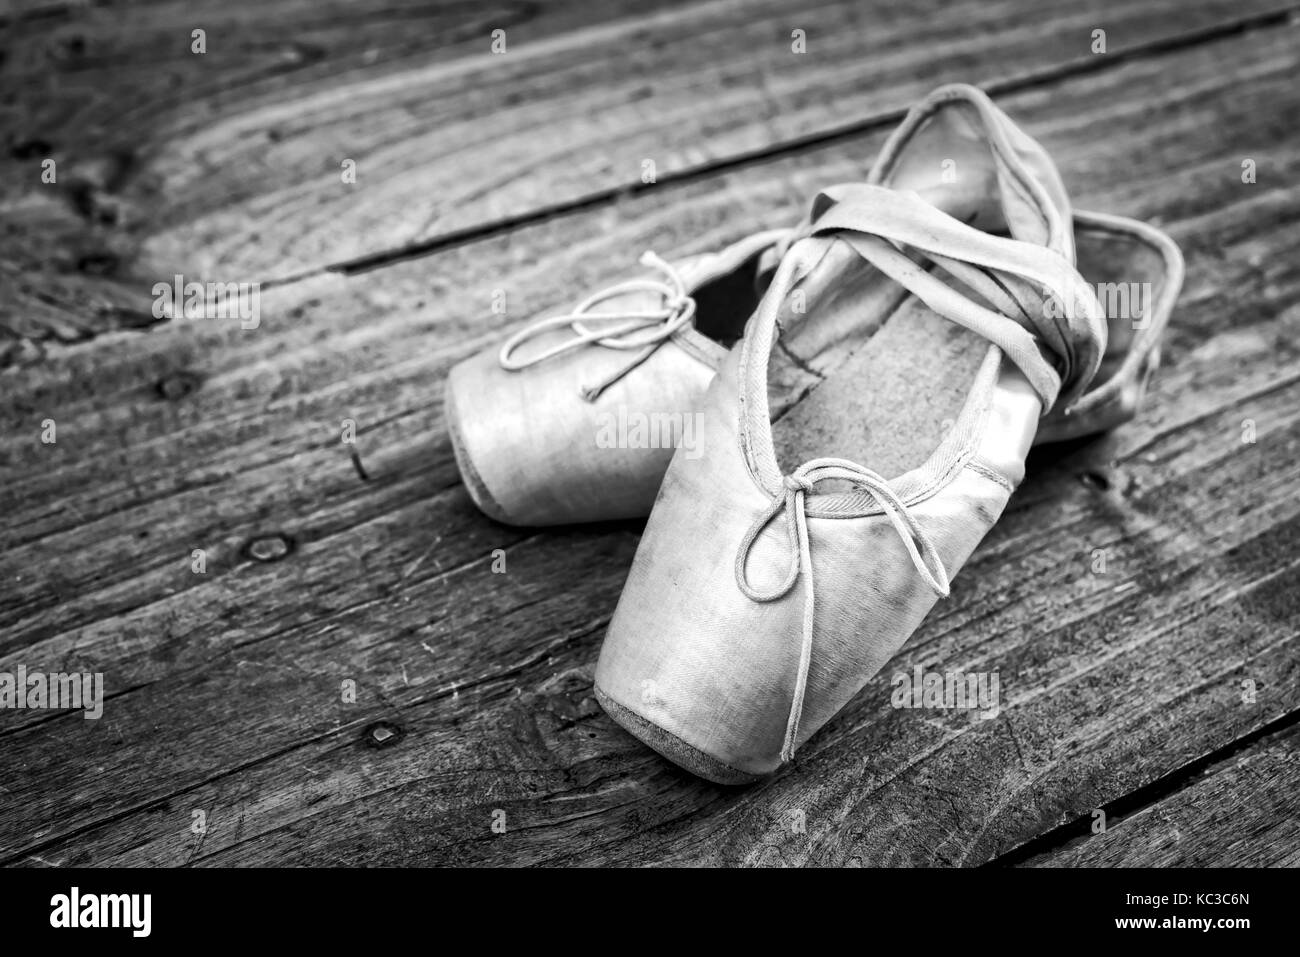 Old pink ballet shoes on a wooden floor, vintage process - Stock Image